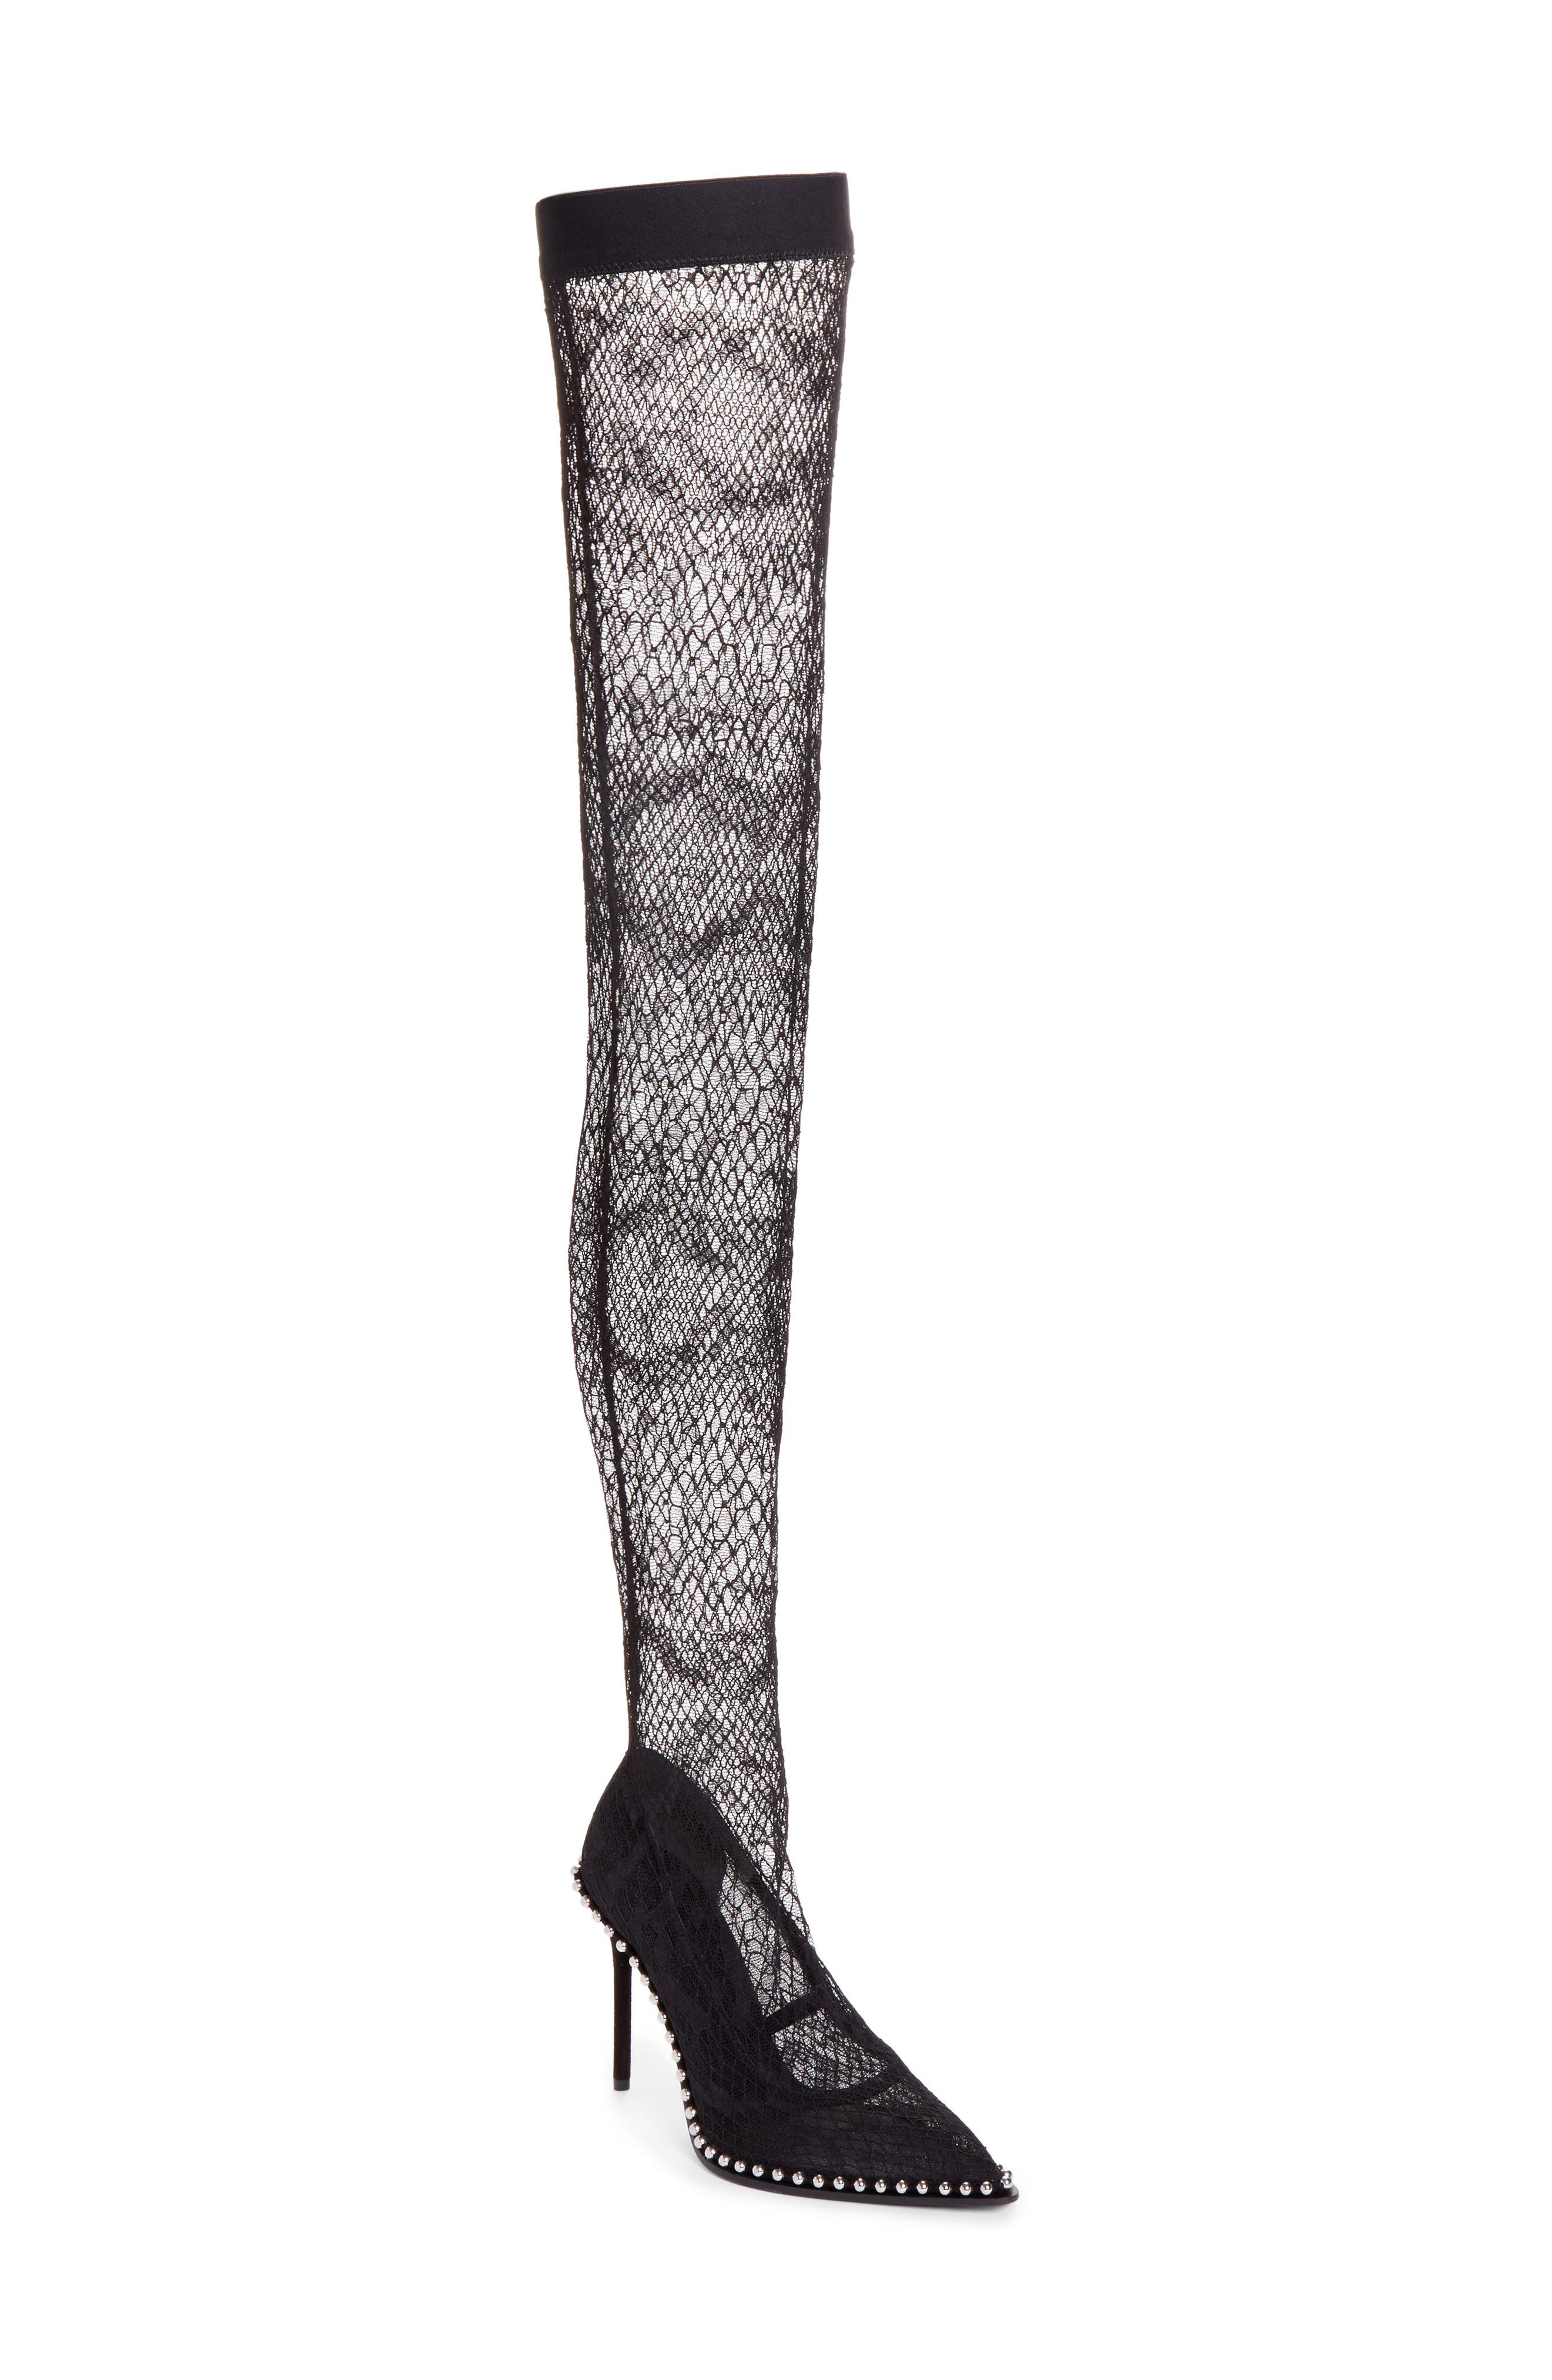 Lyra Thigh-High Fishnet Stocking Pump,                             Main thumbnail 1, color,                             Black